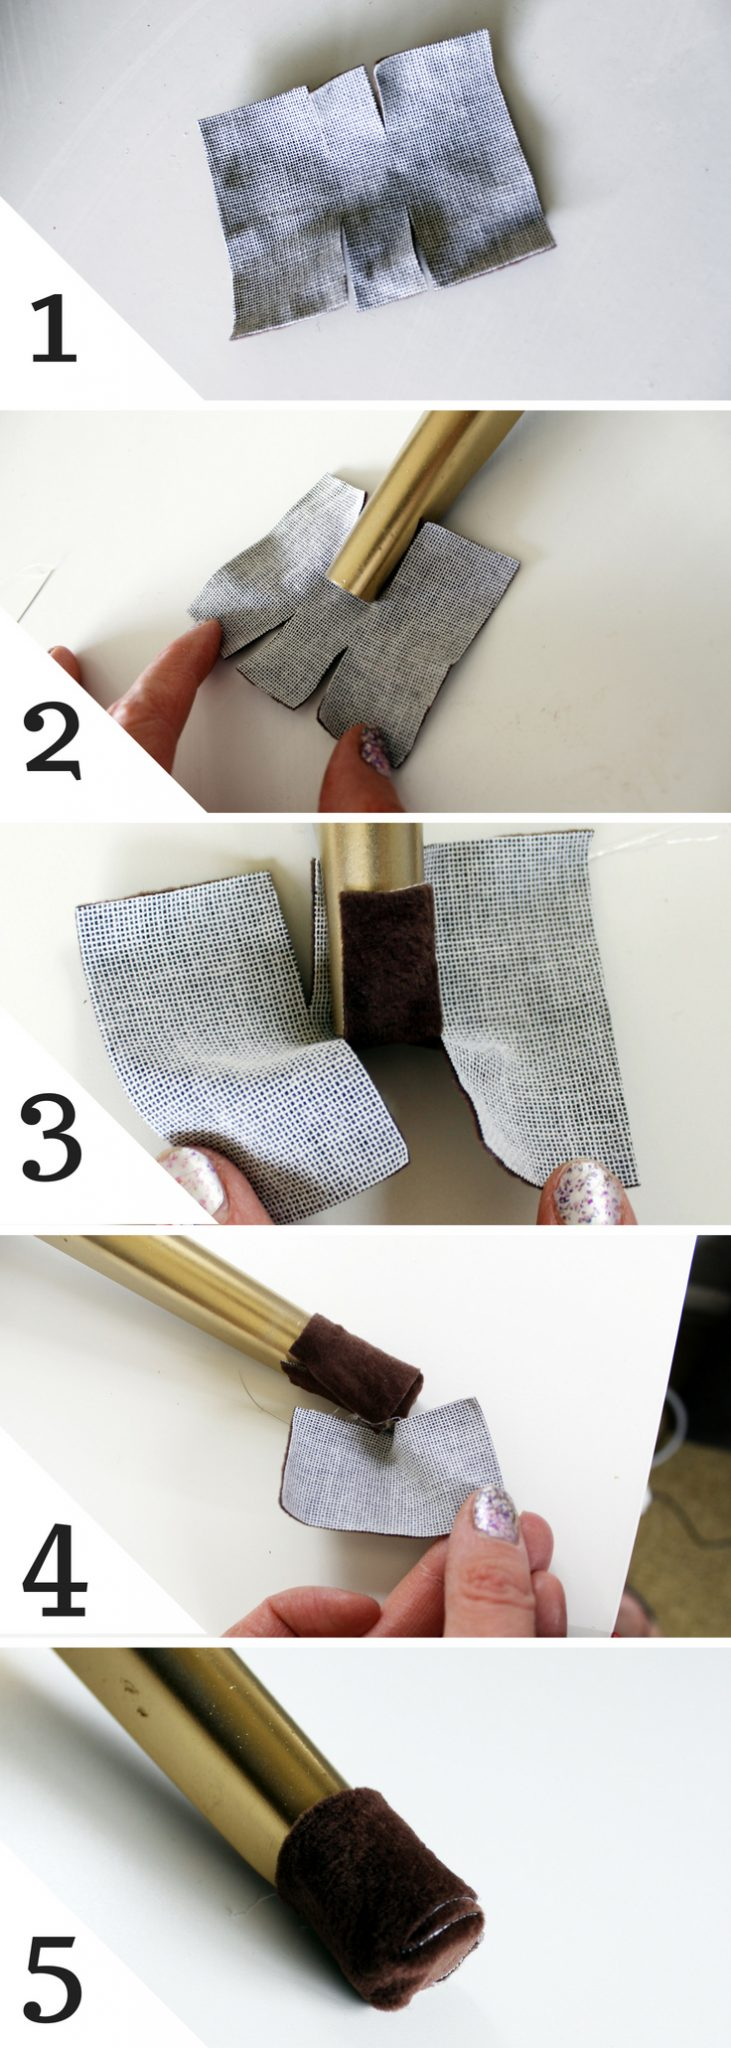 How to cover chair legs to prevent scratching